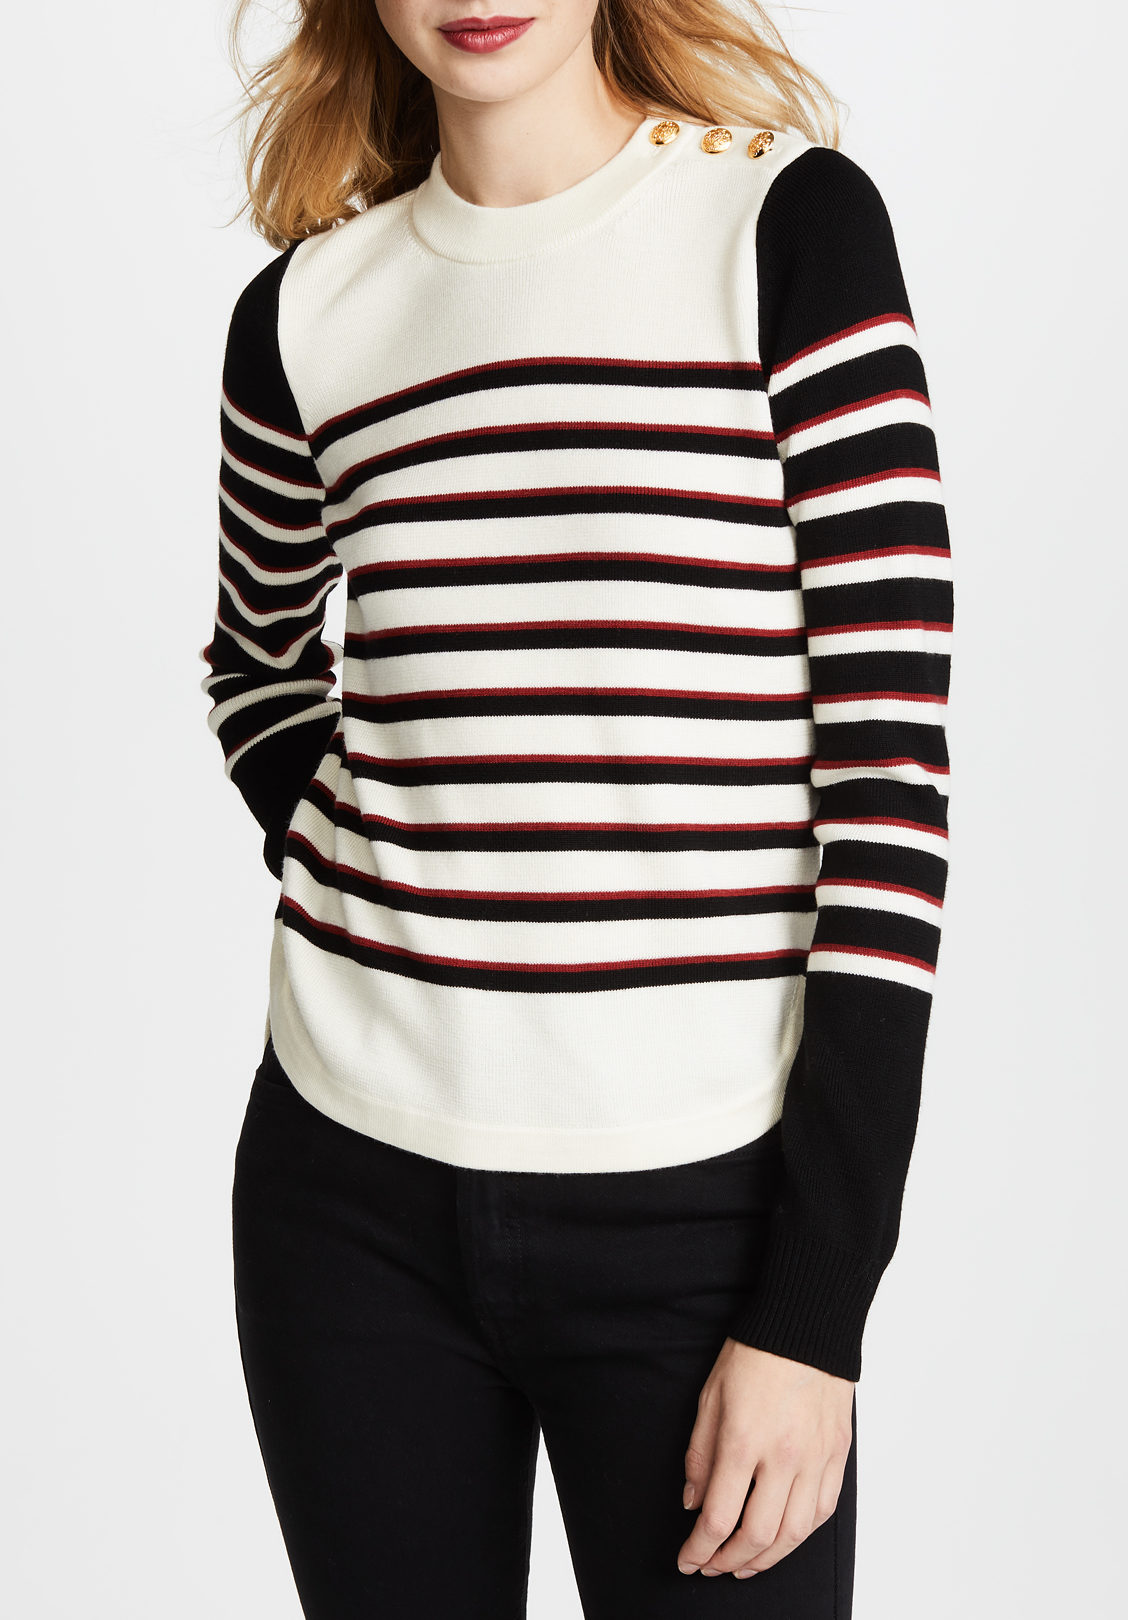 Veronica Beard sweater